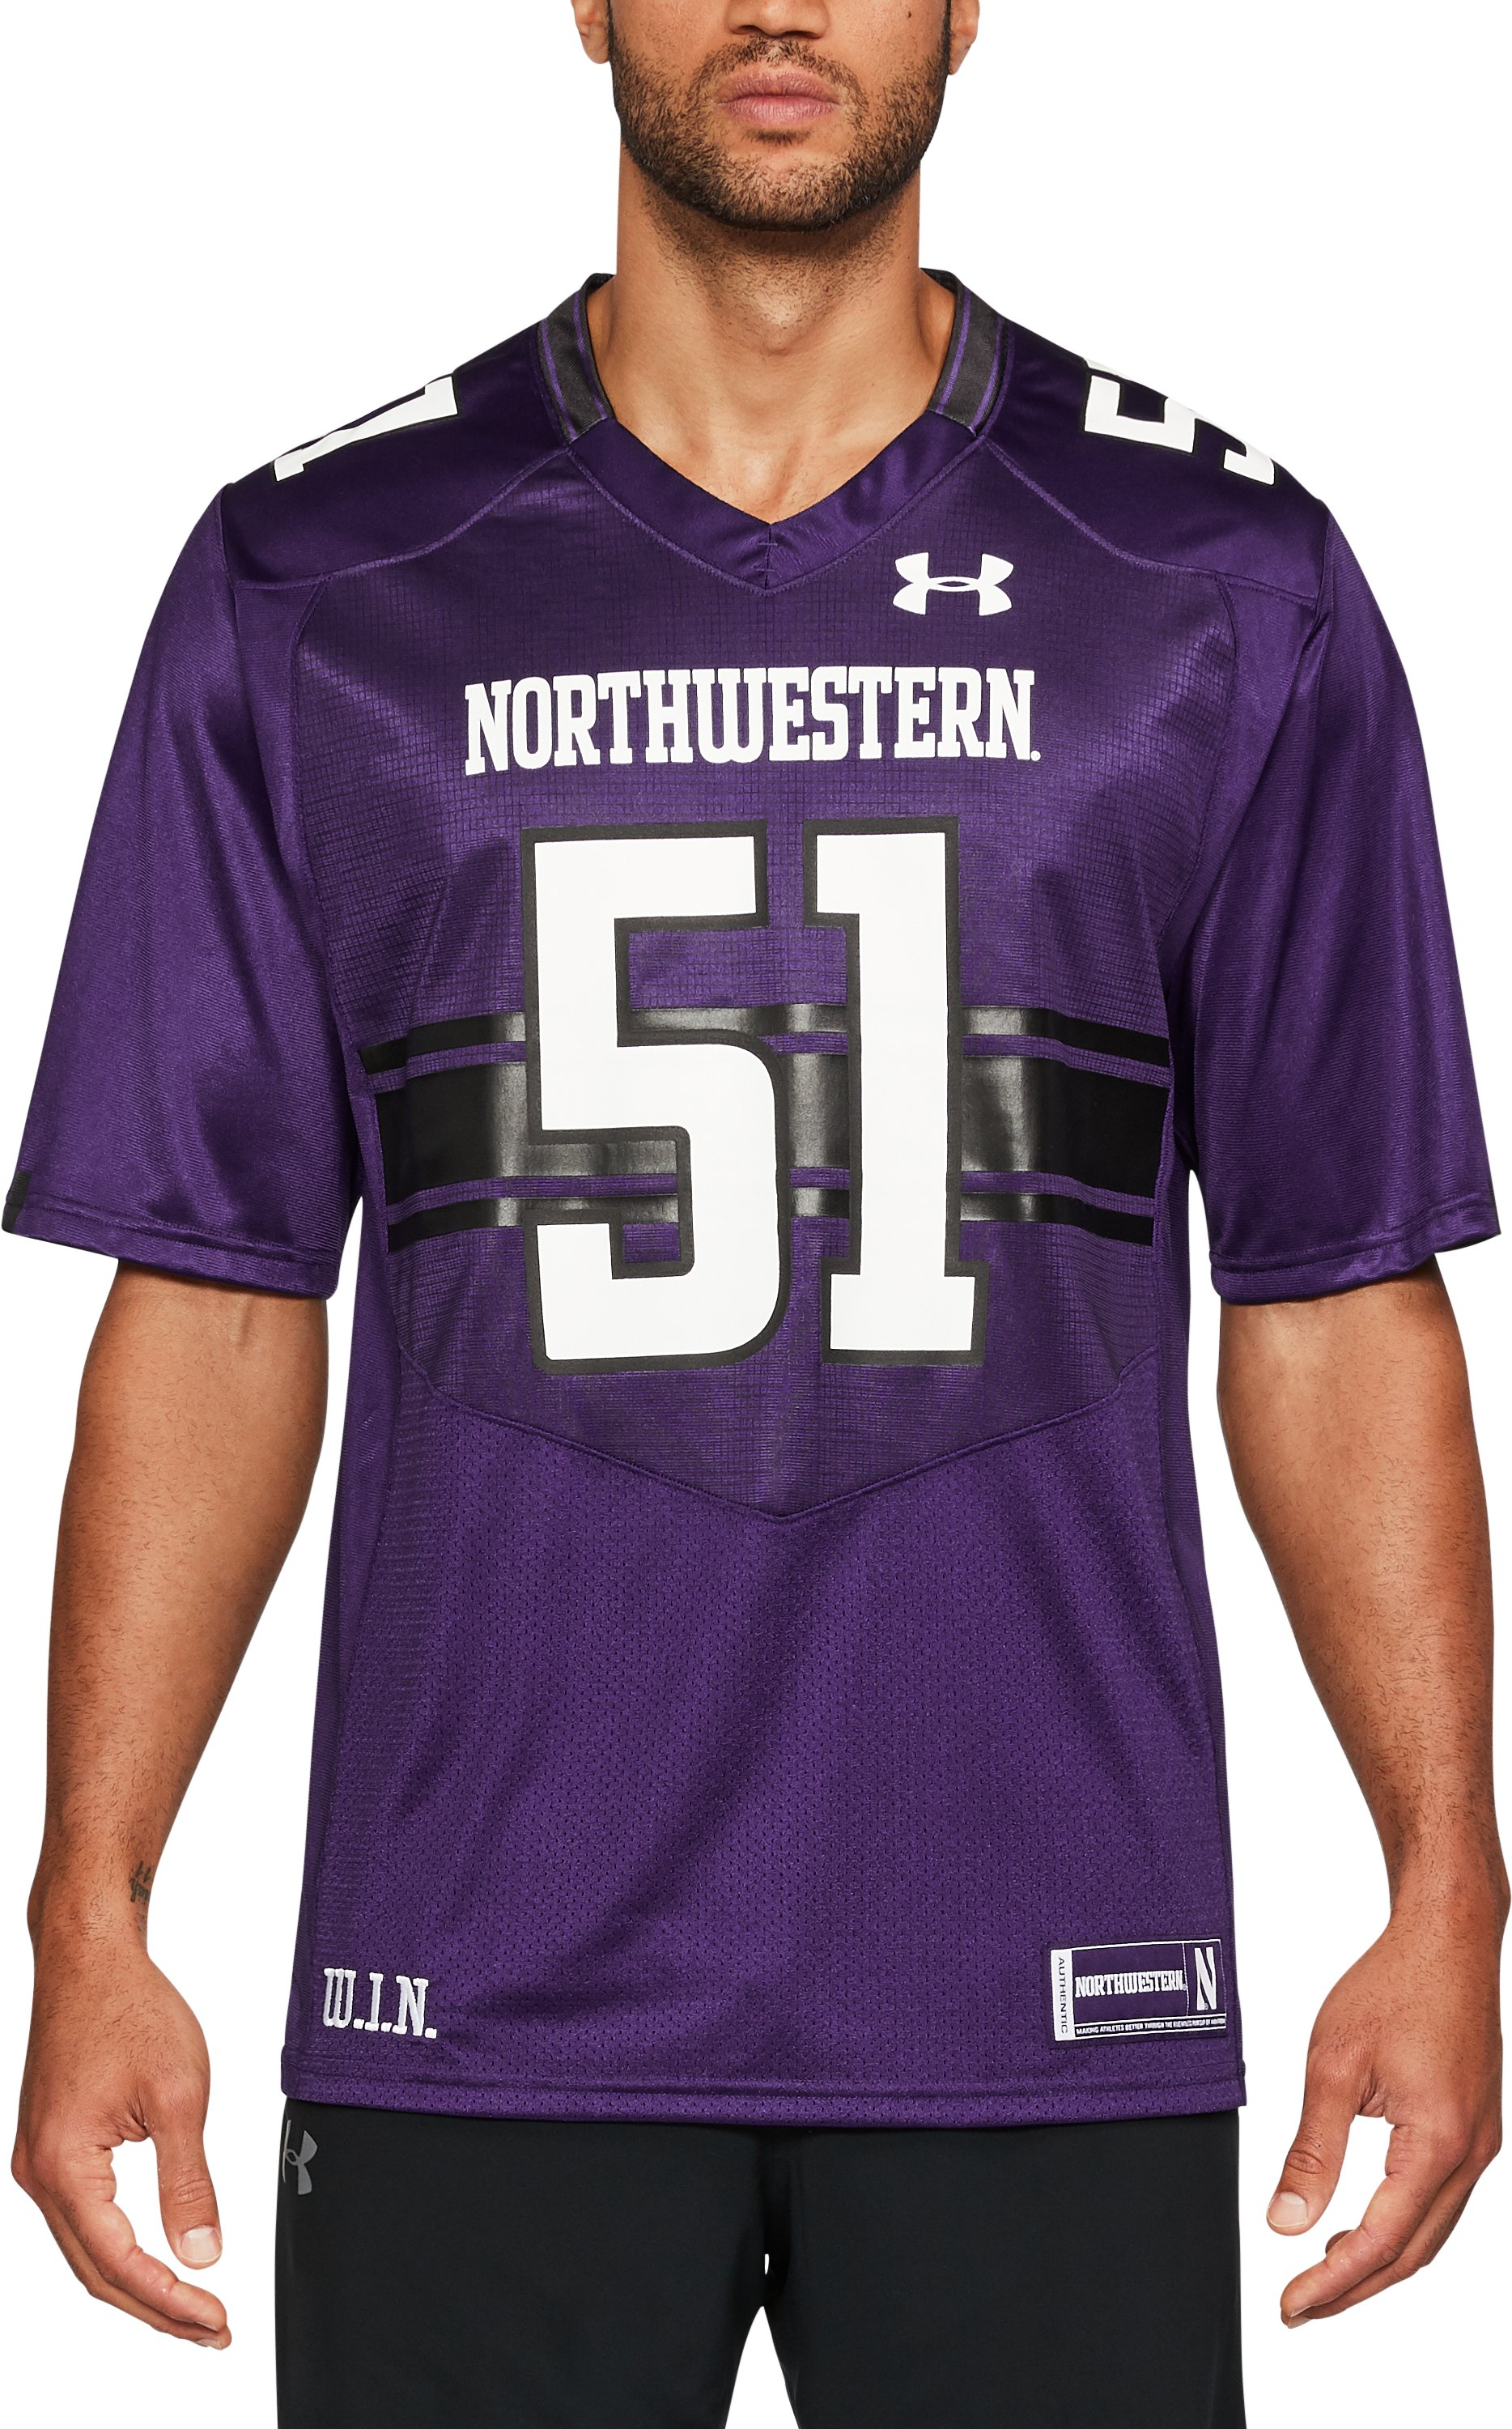 Men's Northwestern Replica Jersey, Purple,